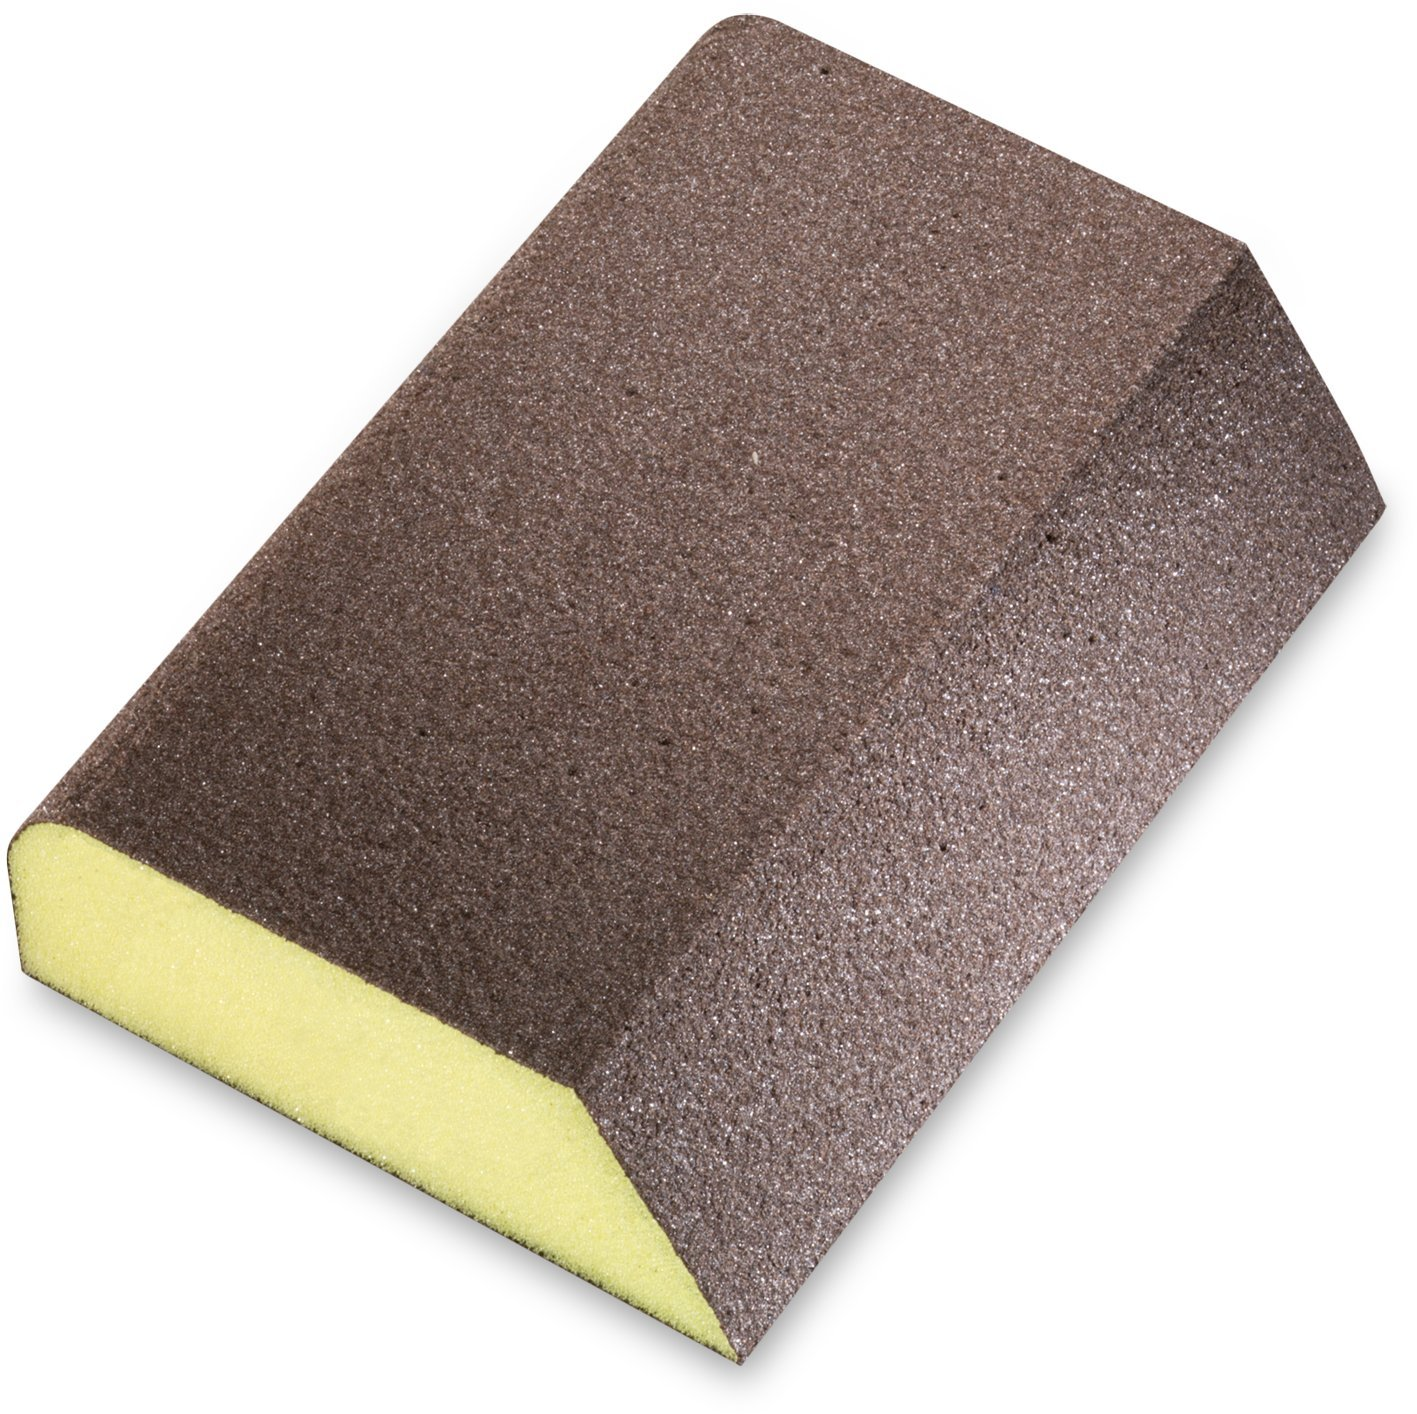 SIA Abrasives 0070.1230.01 Series 7990 siasponge Combi-Block Hard Abrasive, PUR Backing, Aluminum Oxide Grit, Coated 4 Sides, Fine Grade, 2-3/4'' W, 3-3/4'' L, 1'' Thick (Pack of 10)